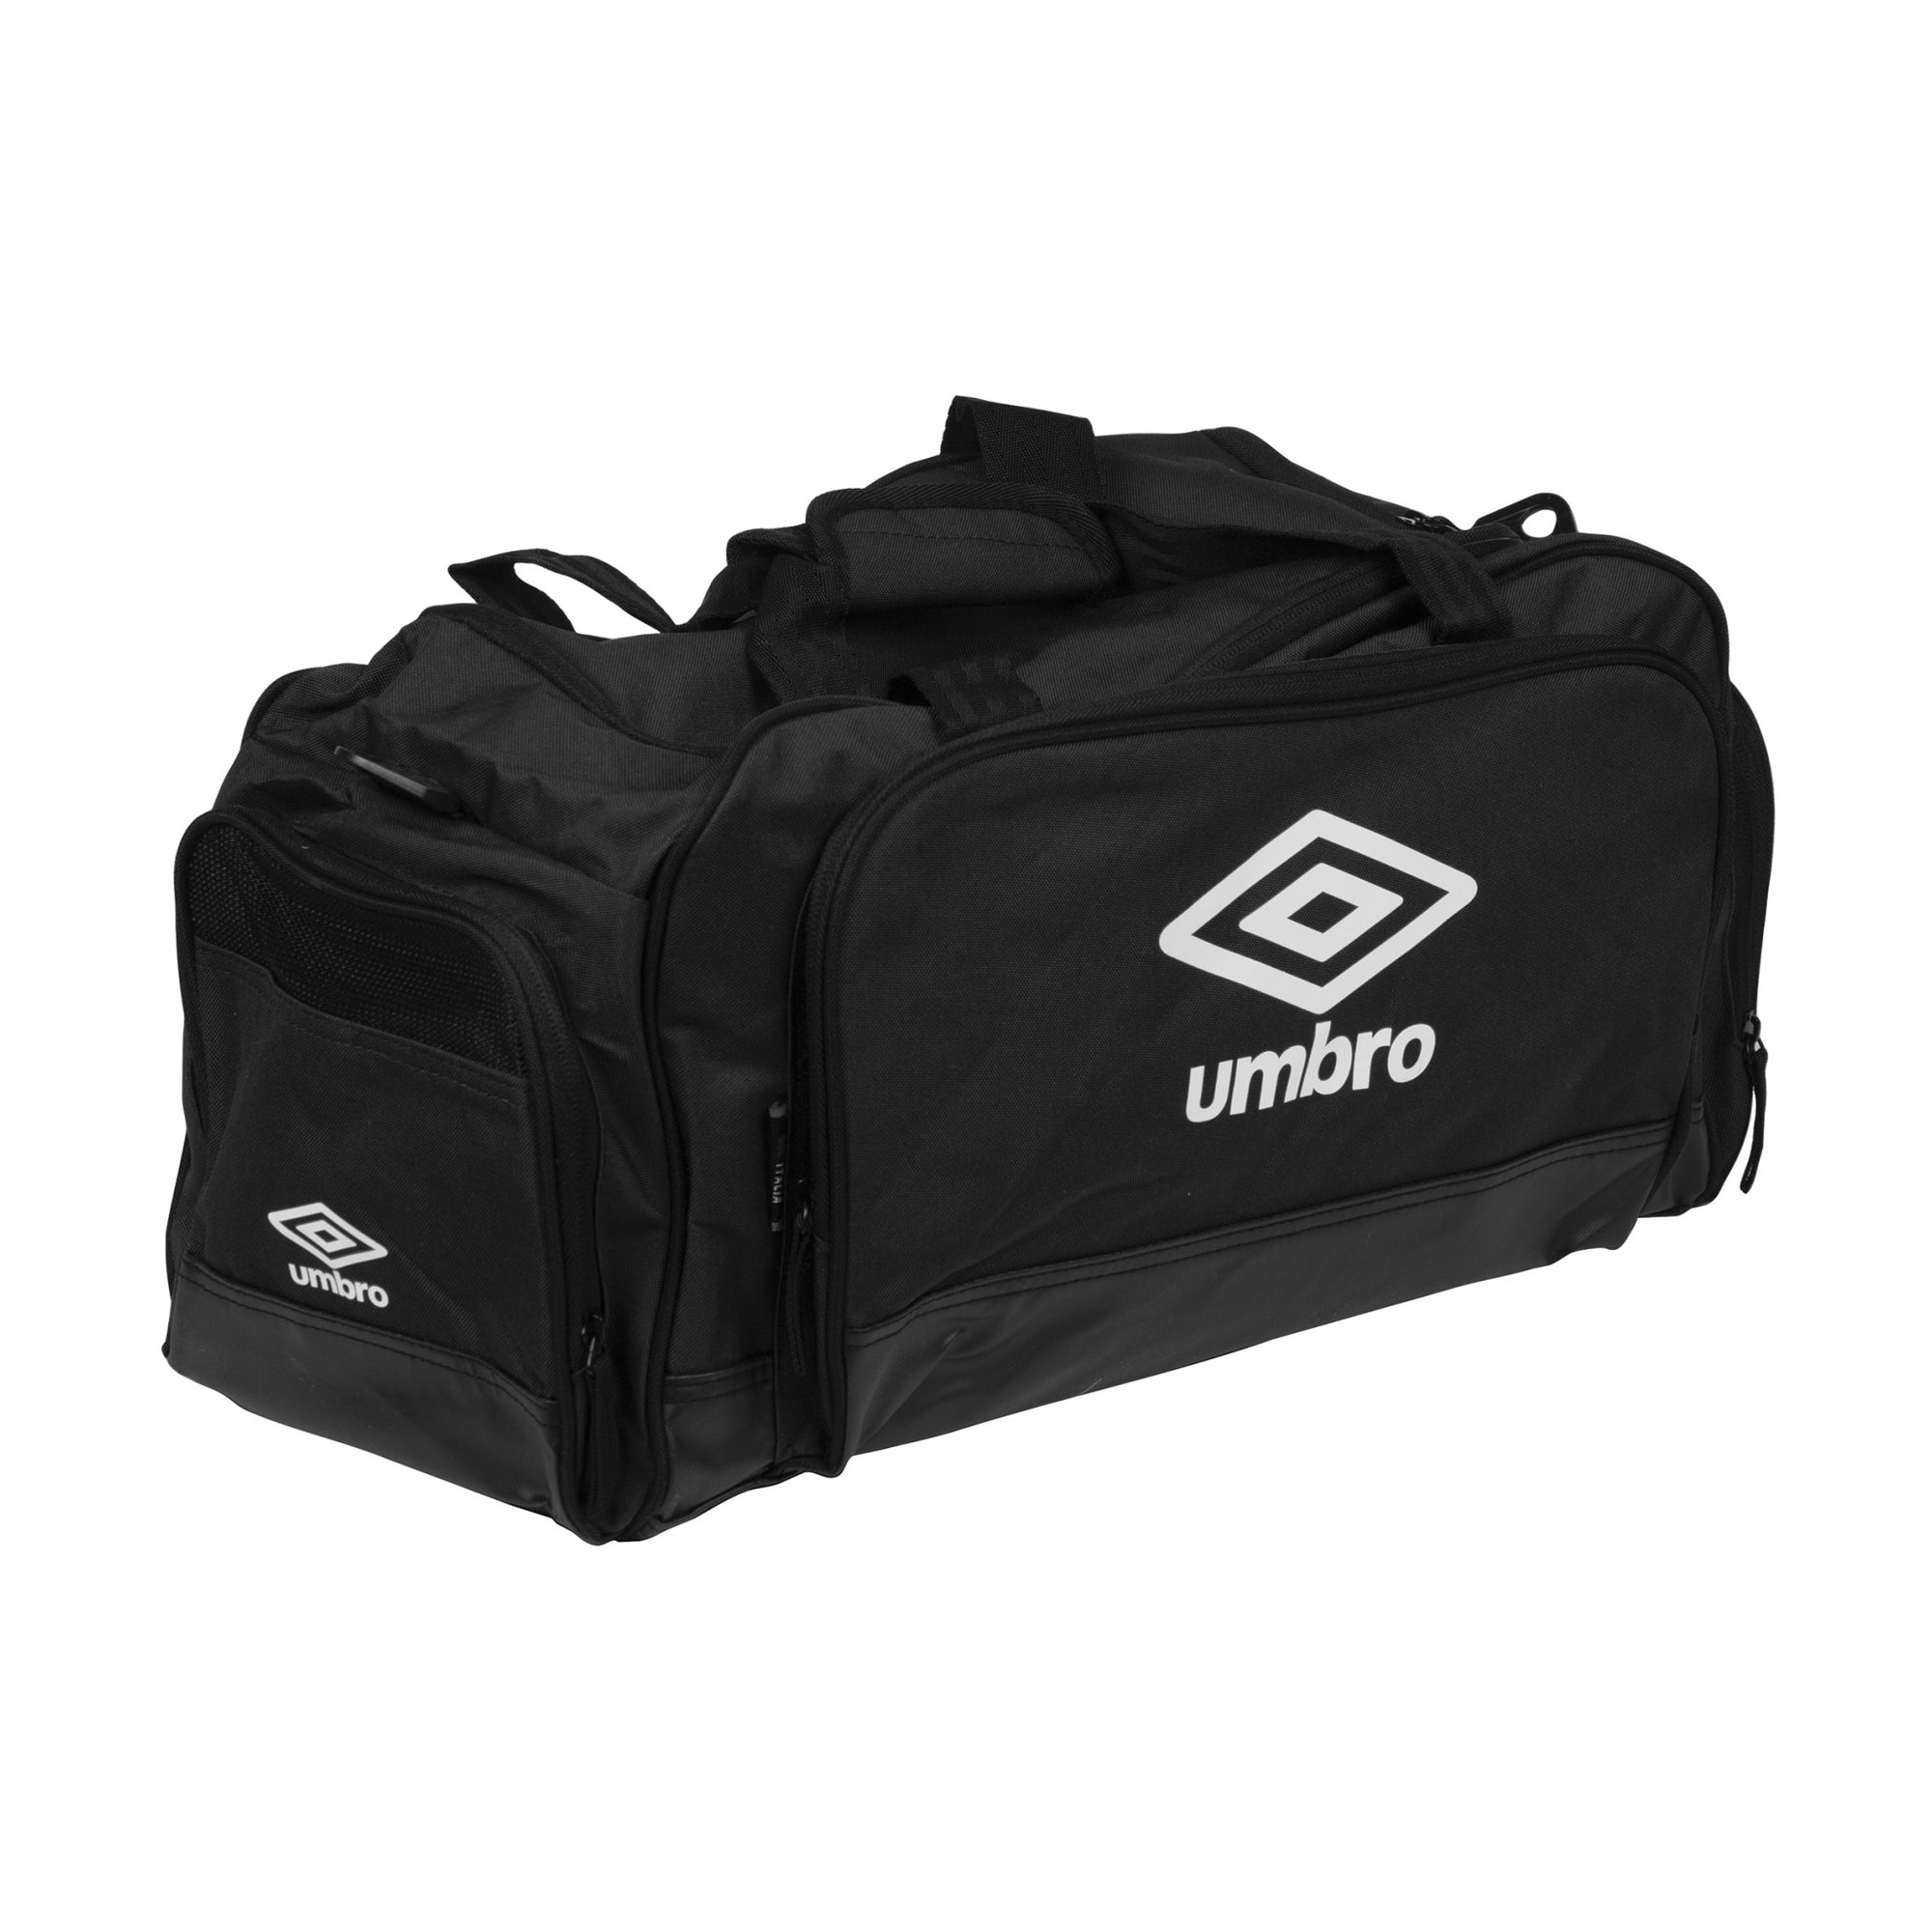 Umbro Small Holdall - Black/White